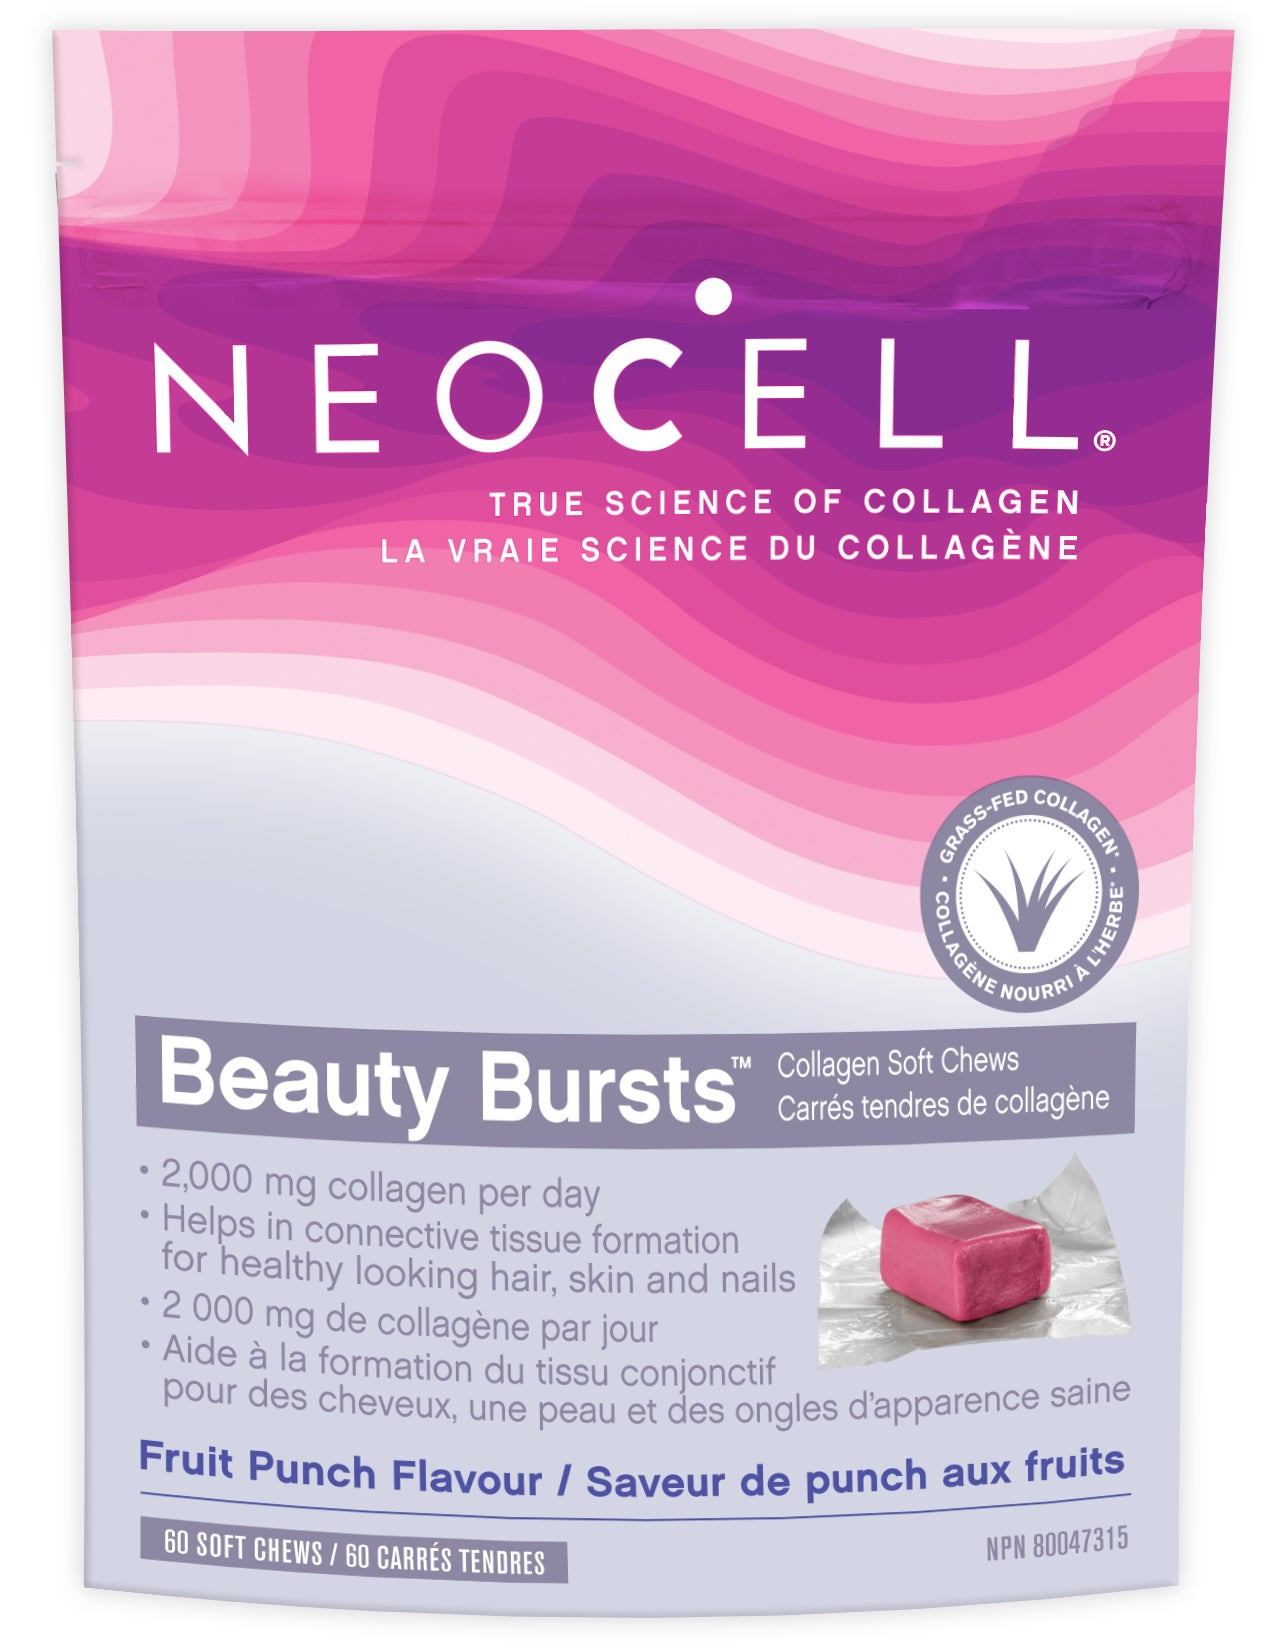 NeoCell Beauty Bursts REV